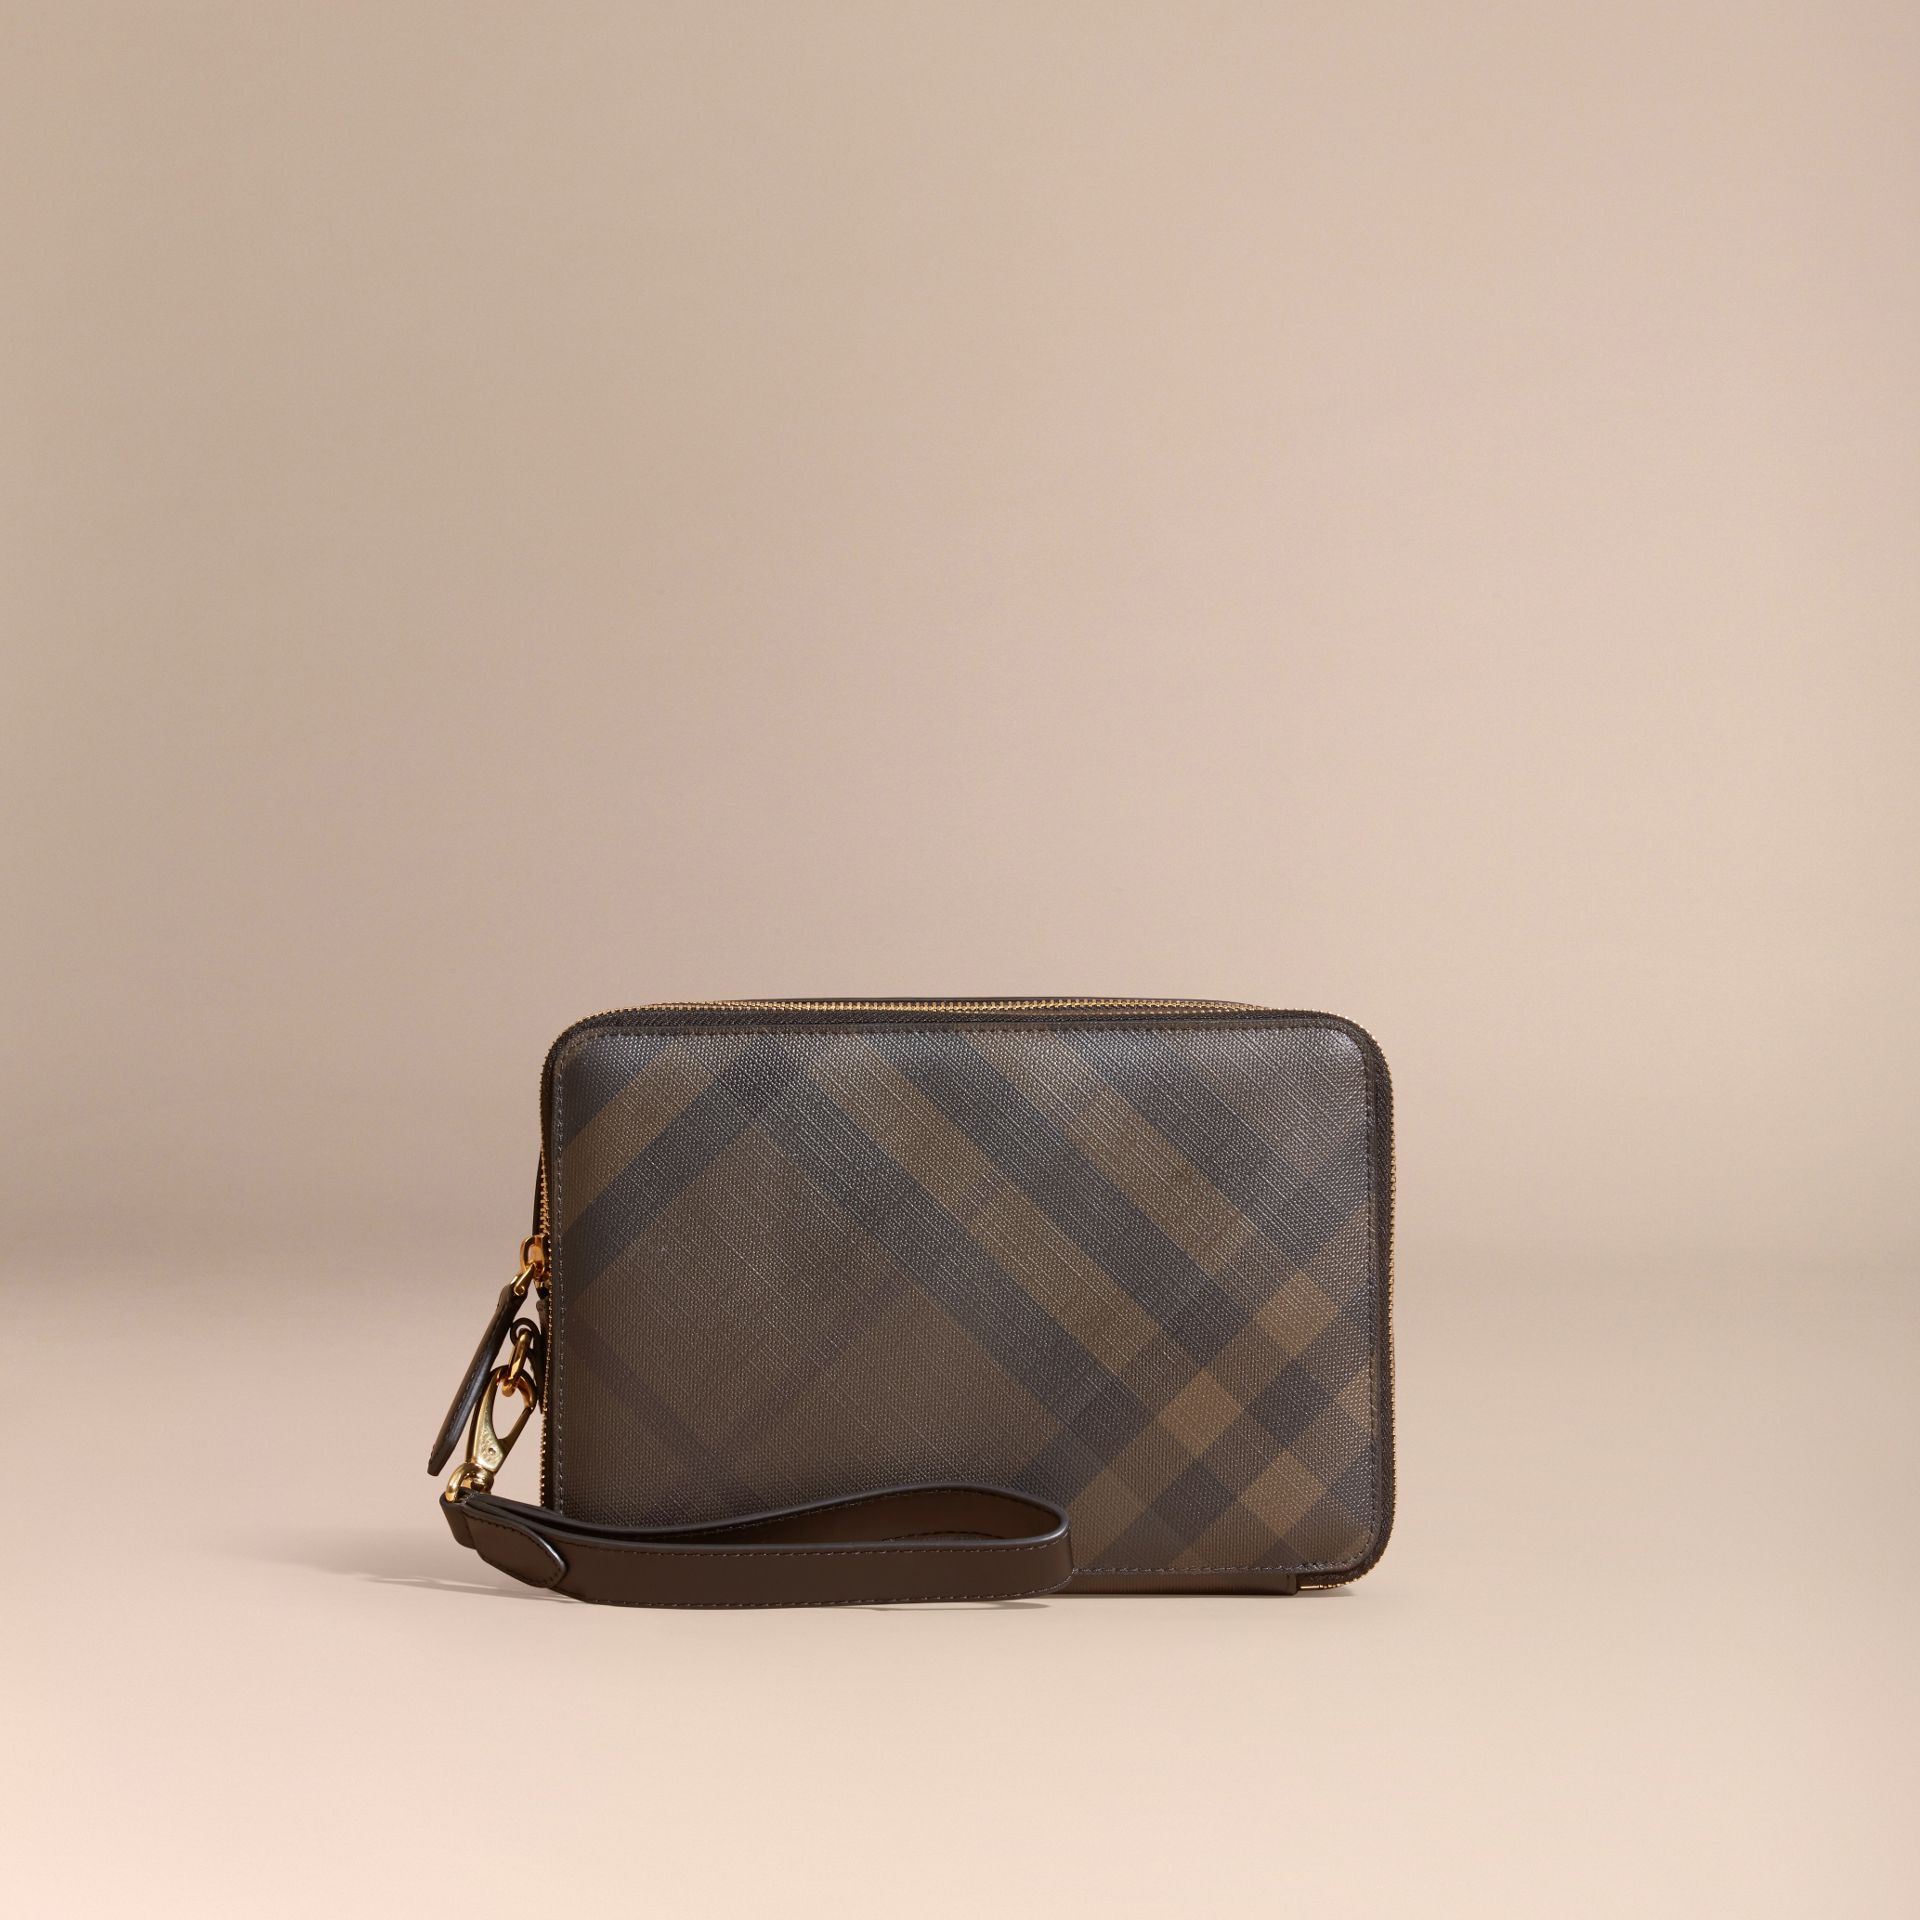 Leather-trimmed London Check Pouch in Chocolate/black - Men | Burberry Canada - gallery image 6